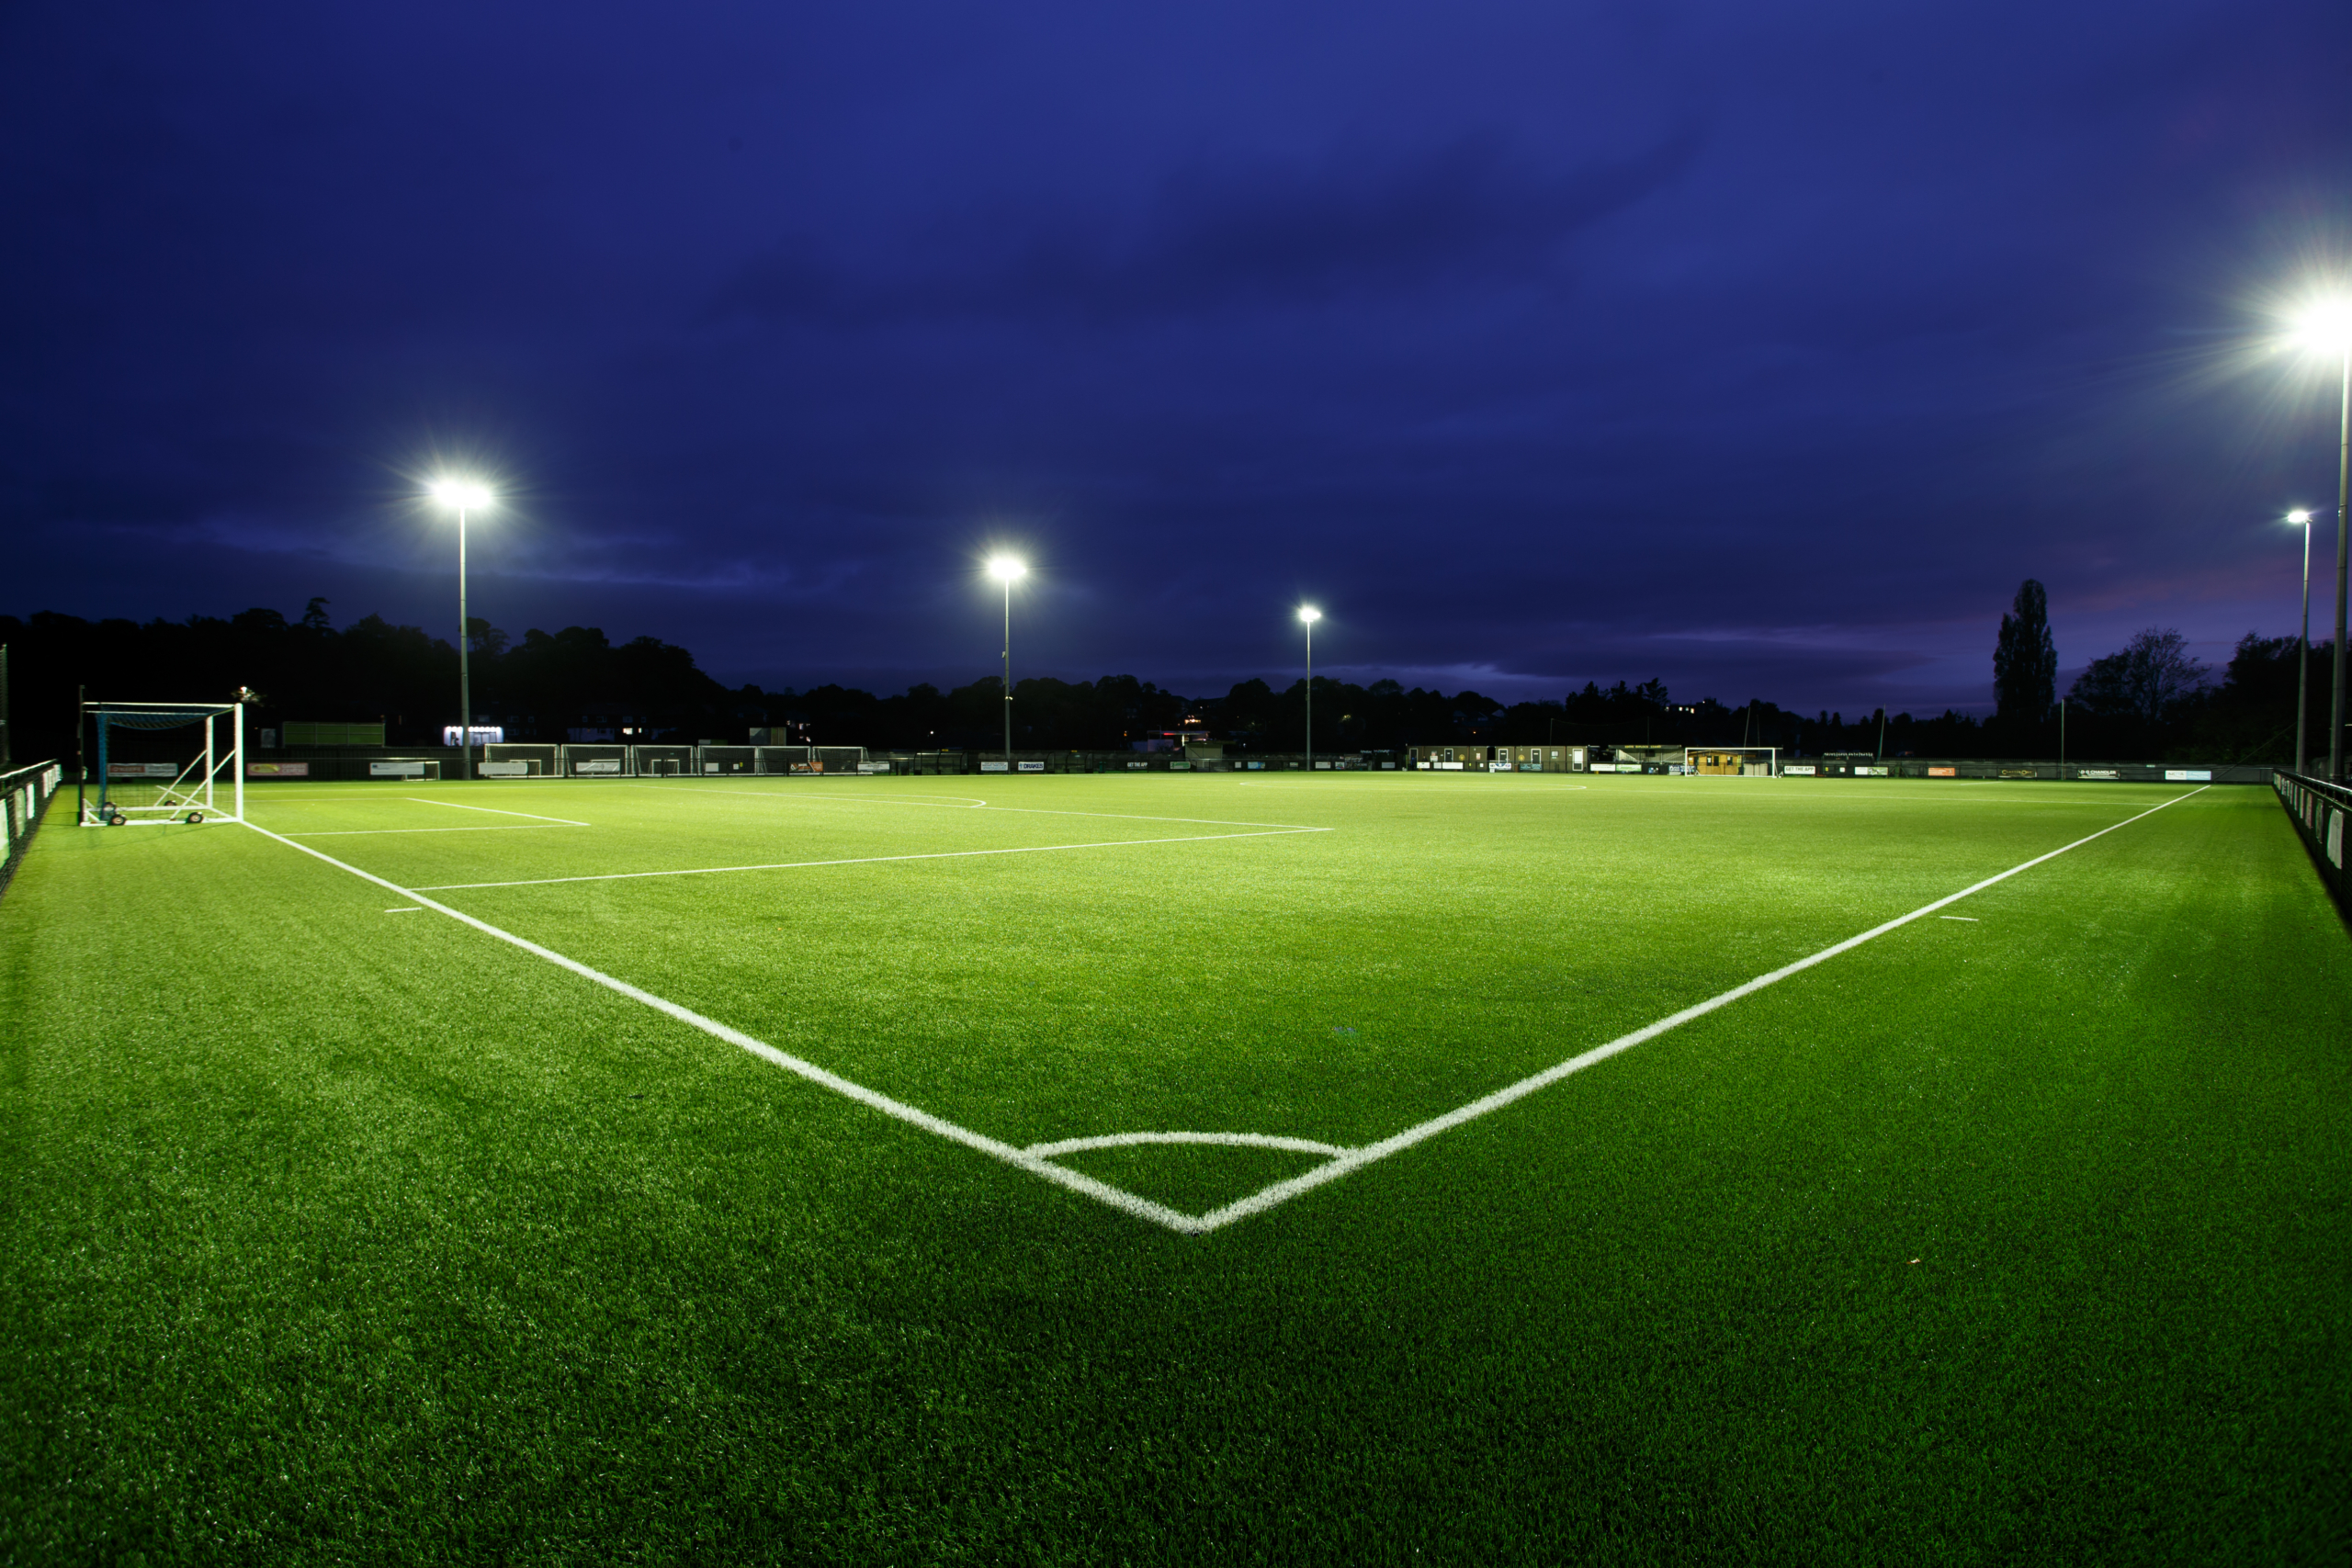 Creasey Park Community Football Centre's all-weather pitch